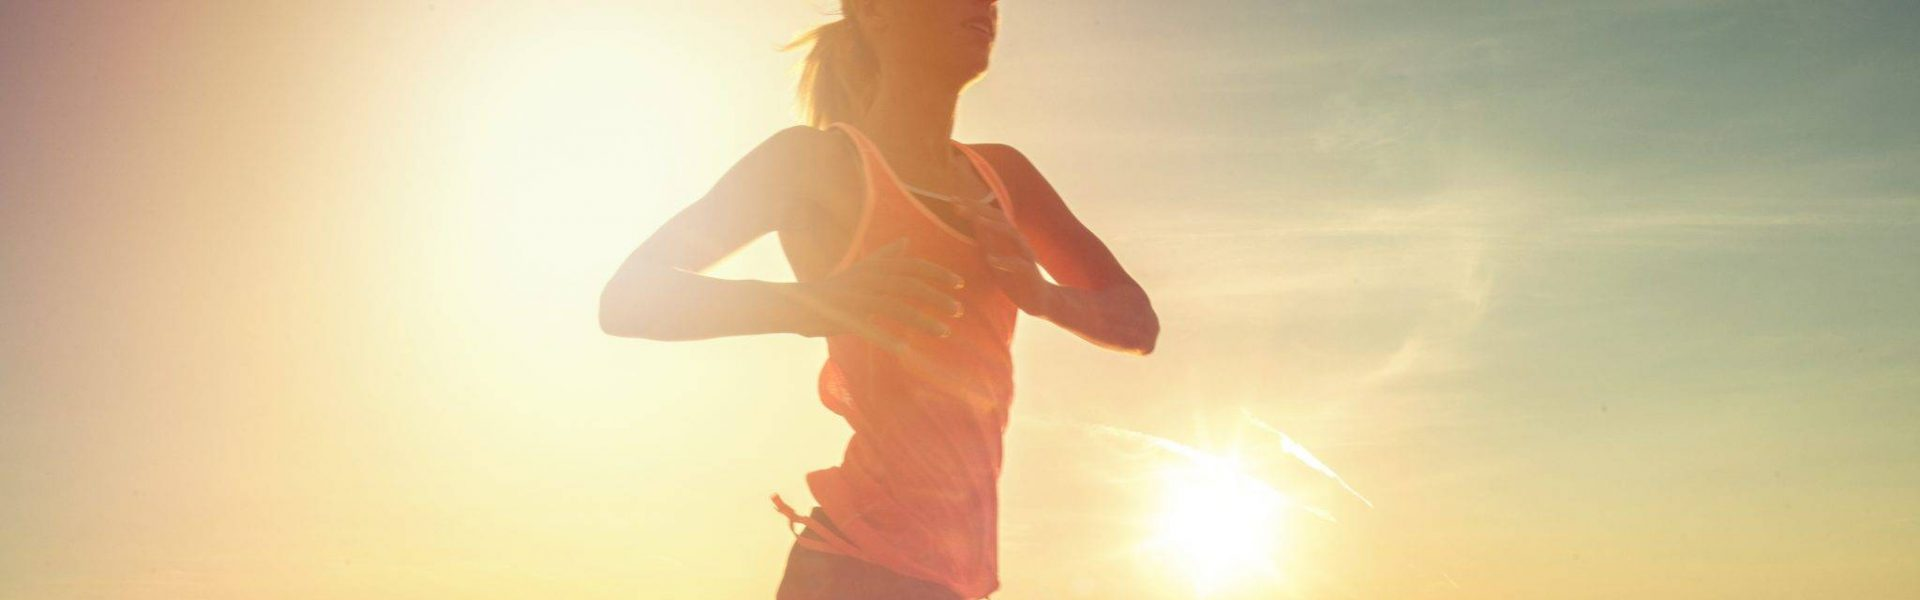 woman-running-without-sporting-injuries-after-osteopathy-treatment